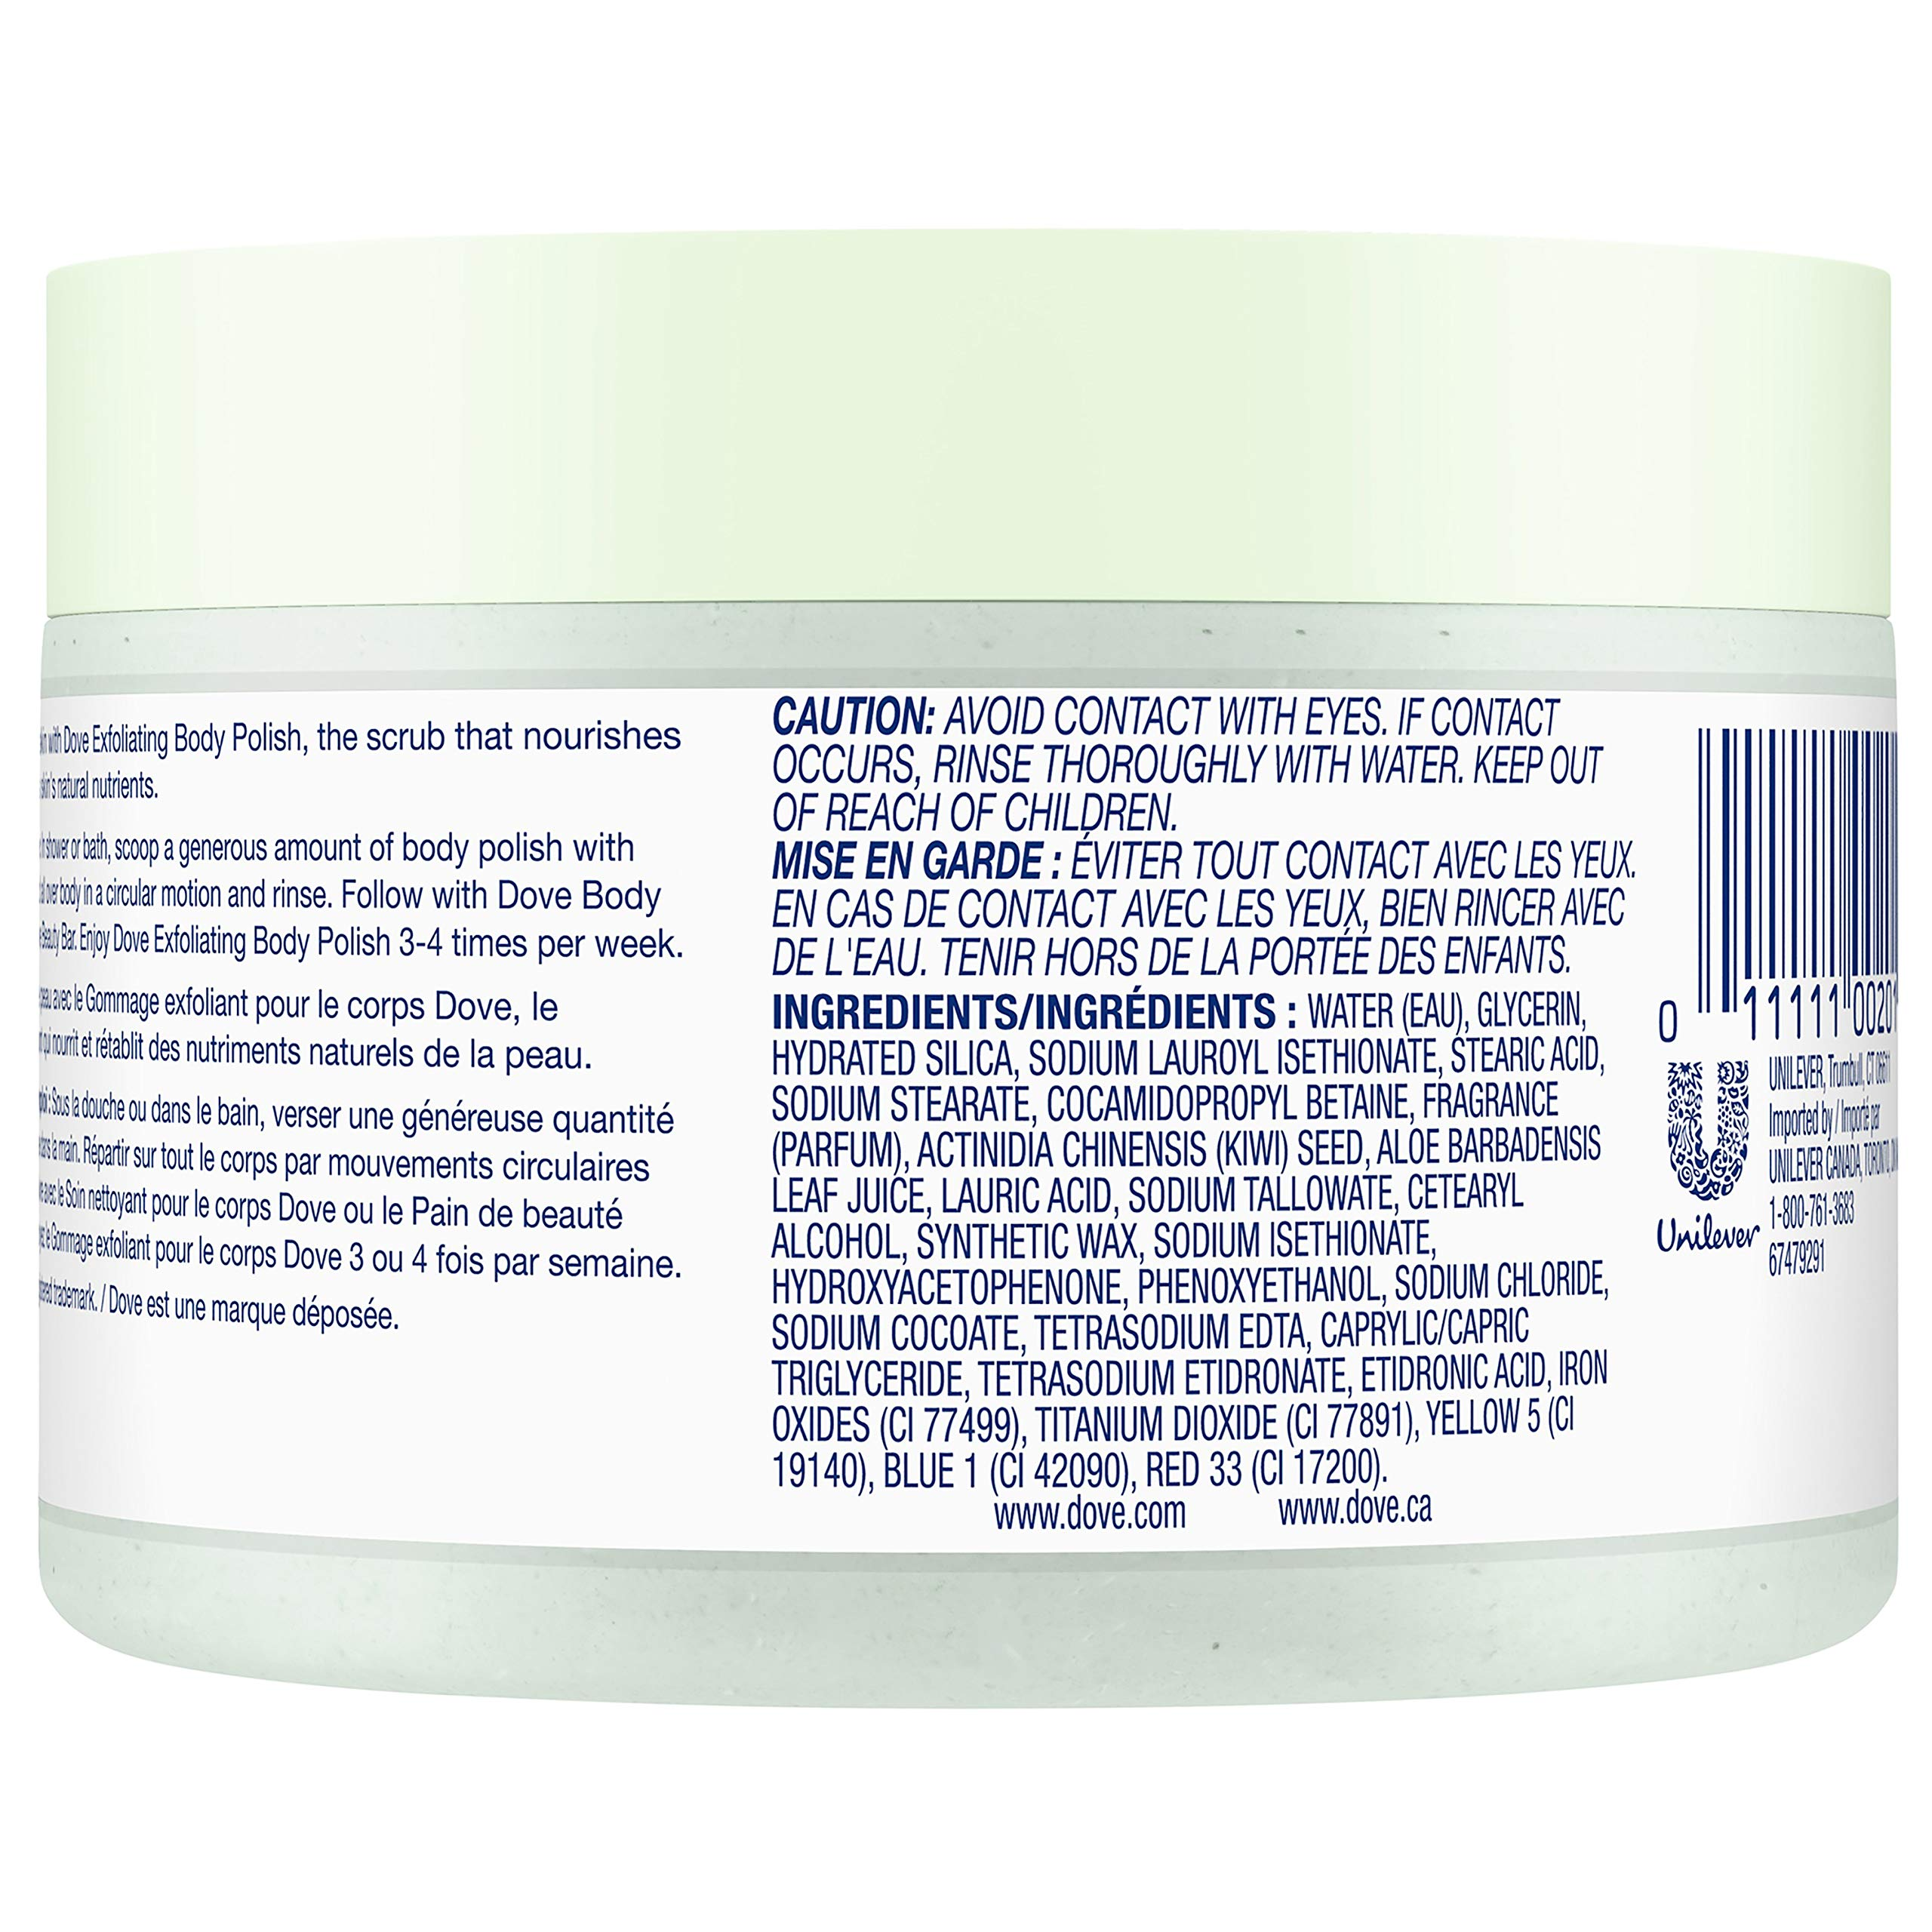 Dove Exfoliating Body Polish Body Scrub Buy Online In Israel At Desertcart